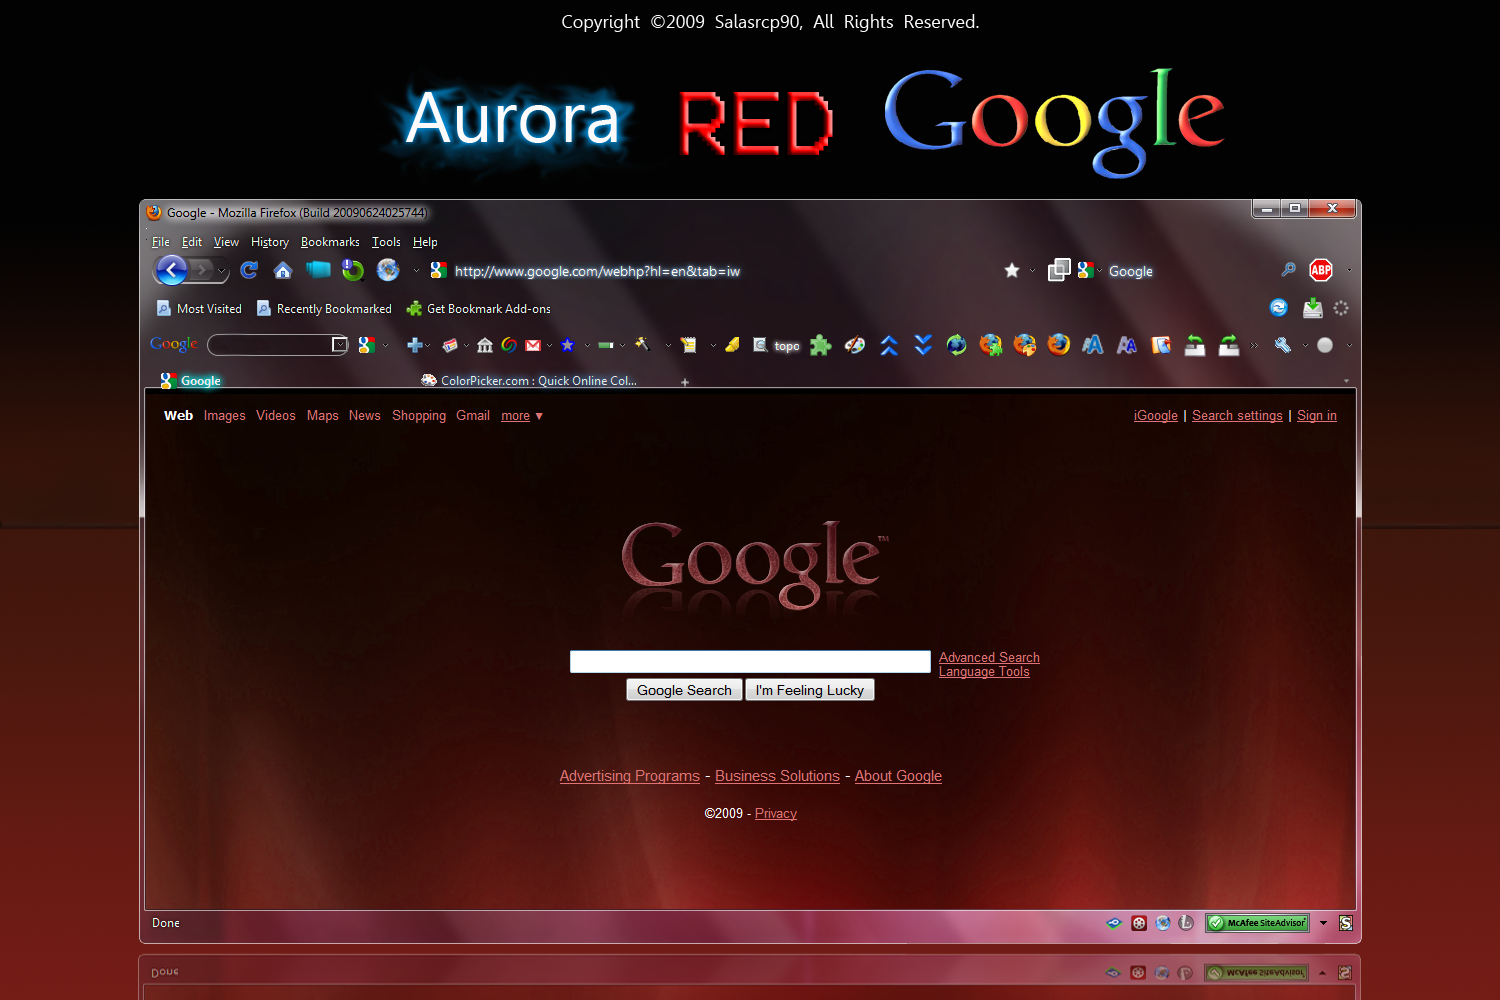 Aurora_RED_Google_by_salasrcp90